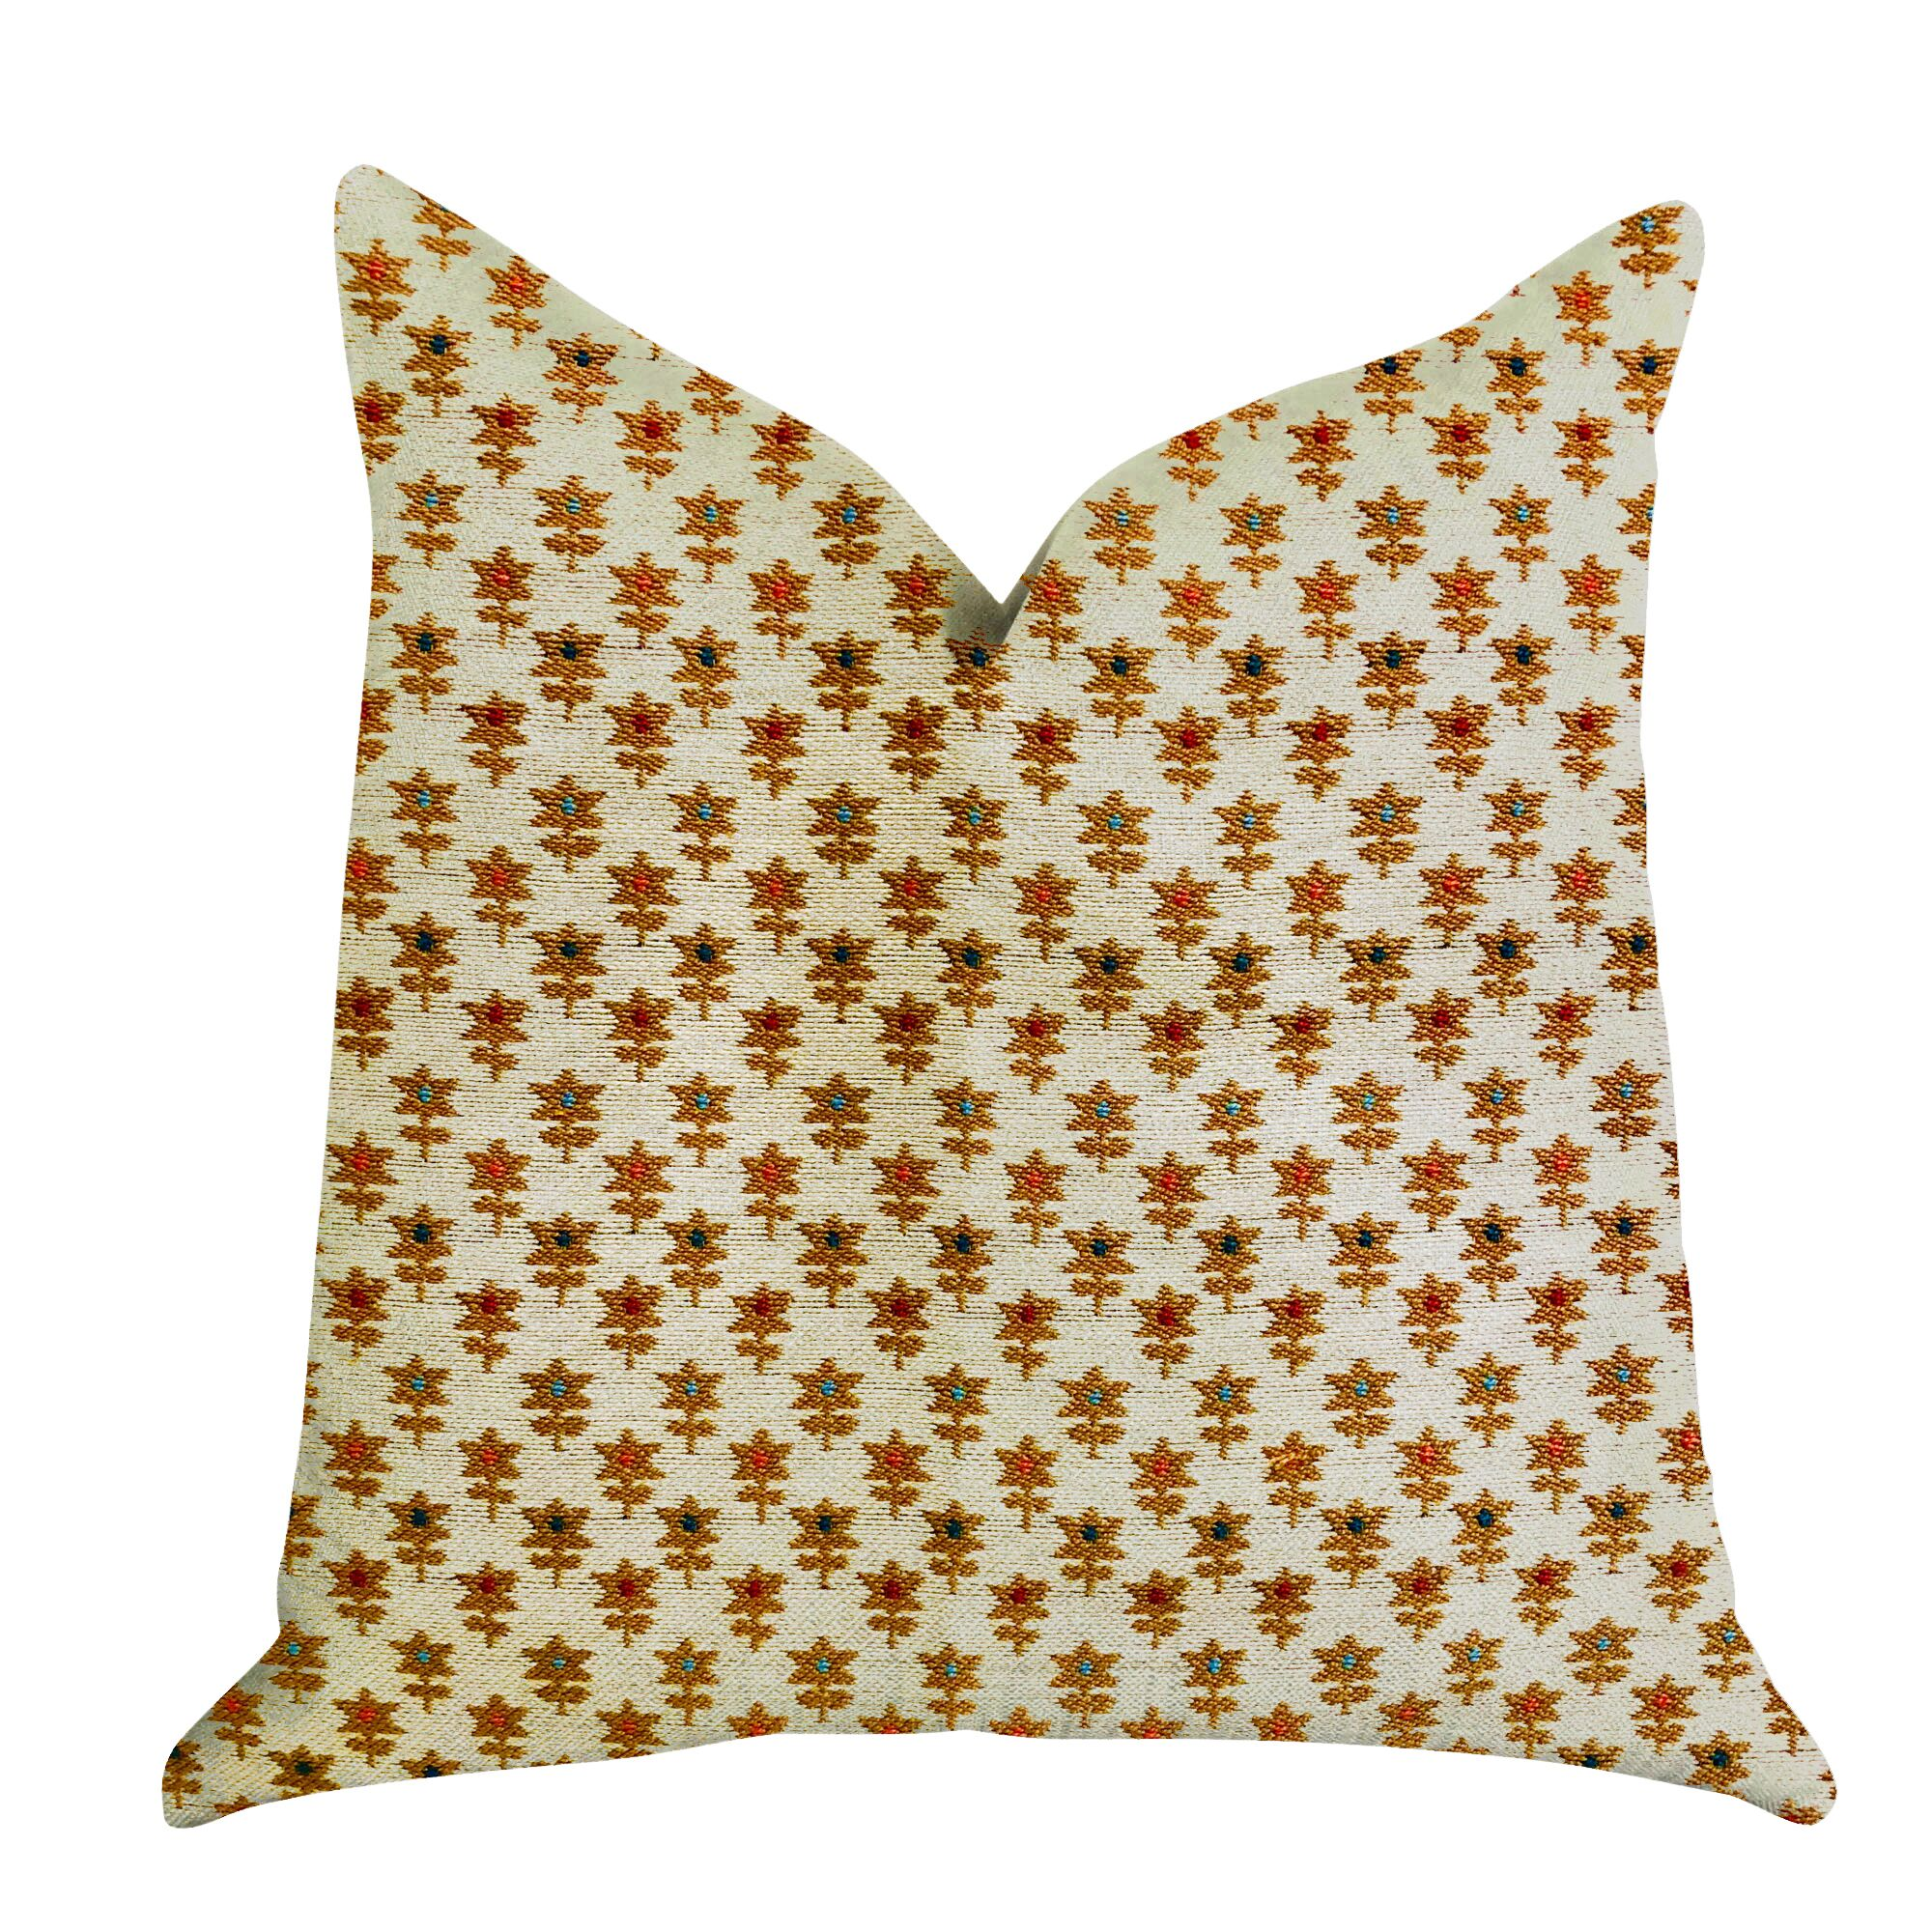 Henthorn Floral Luxury Pillow Size: 20